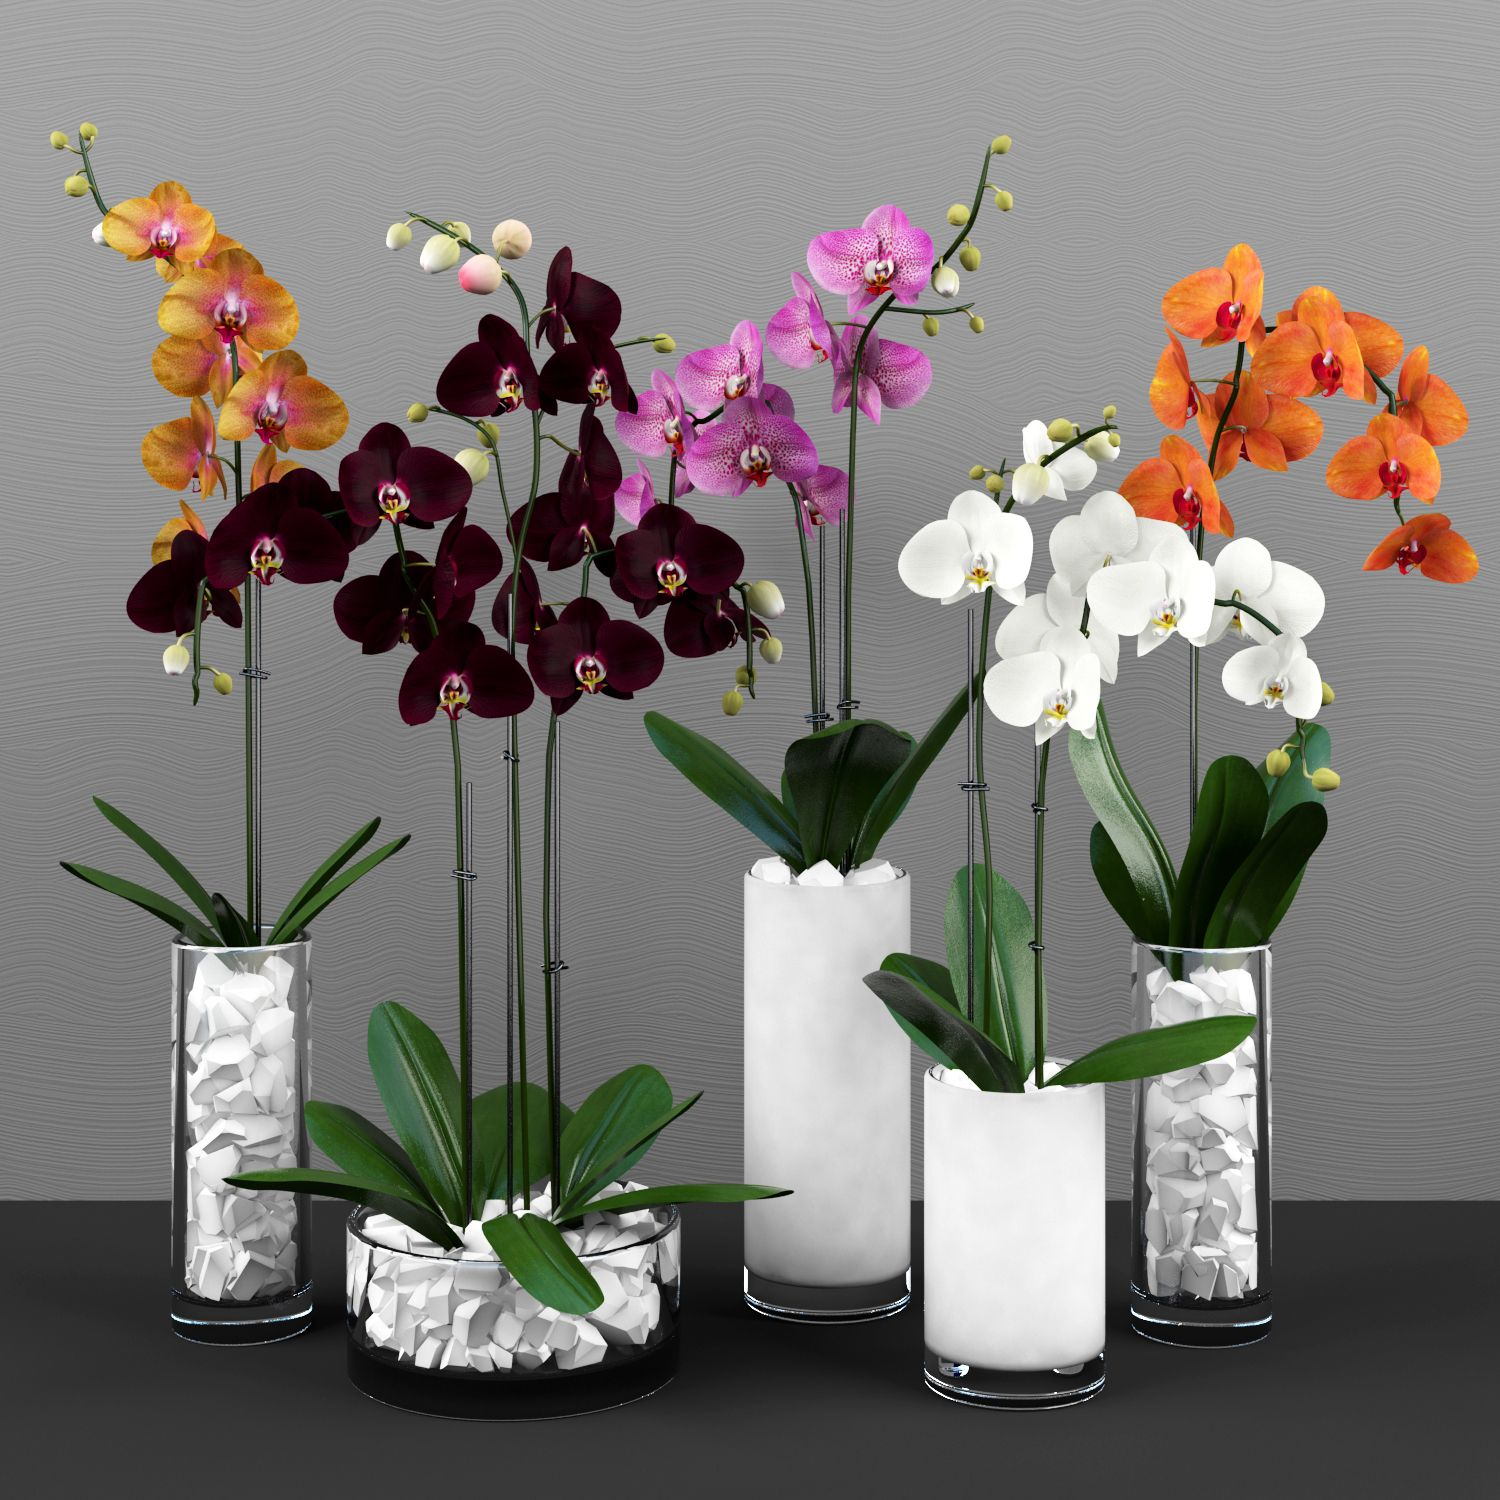 3d Phalaenopsis Orchids Model 251 Free Download Orchid Flower Arrangements House Plants Decor Plant Decor